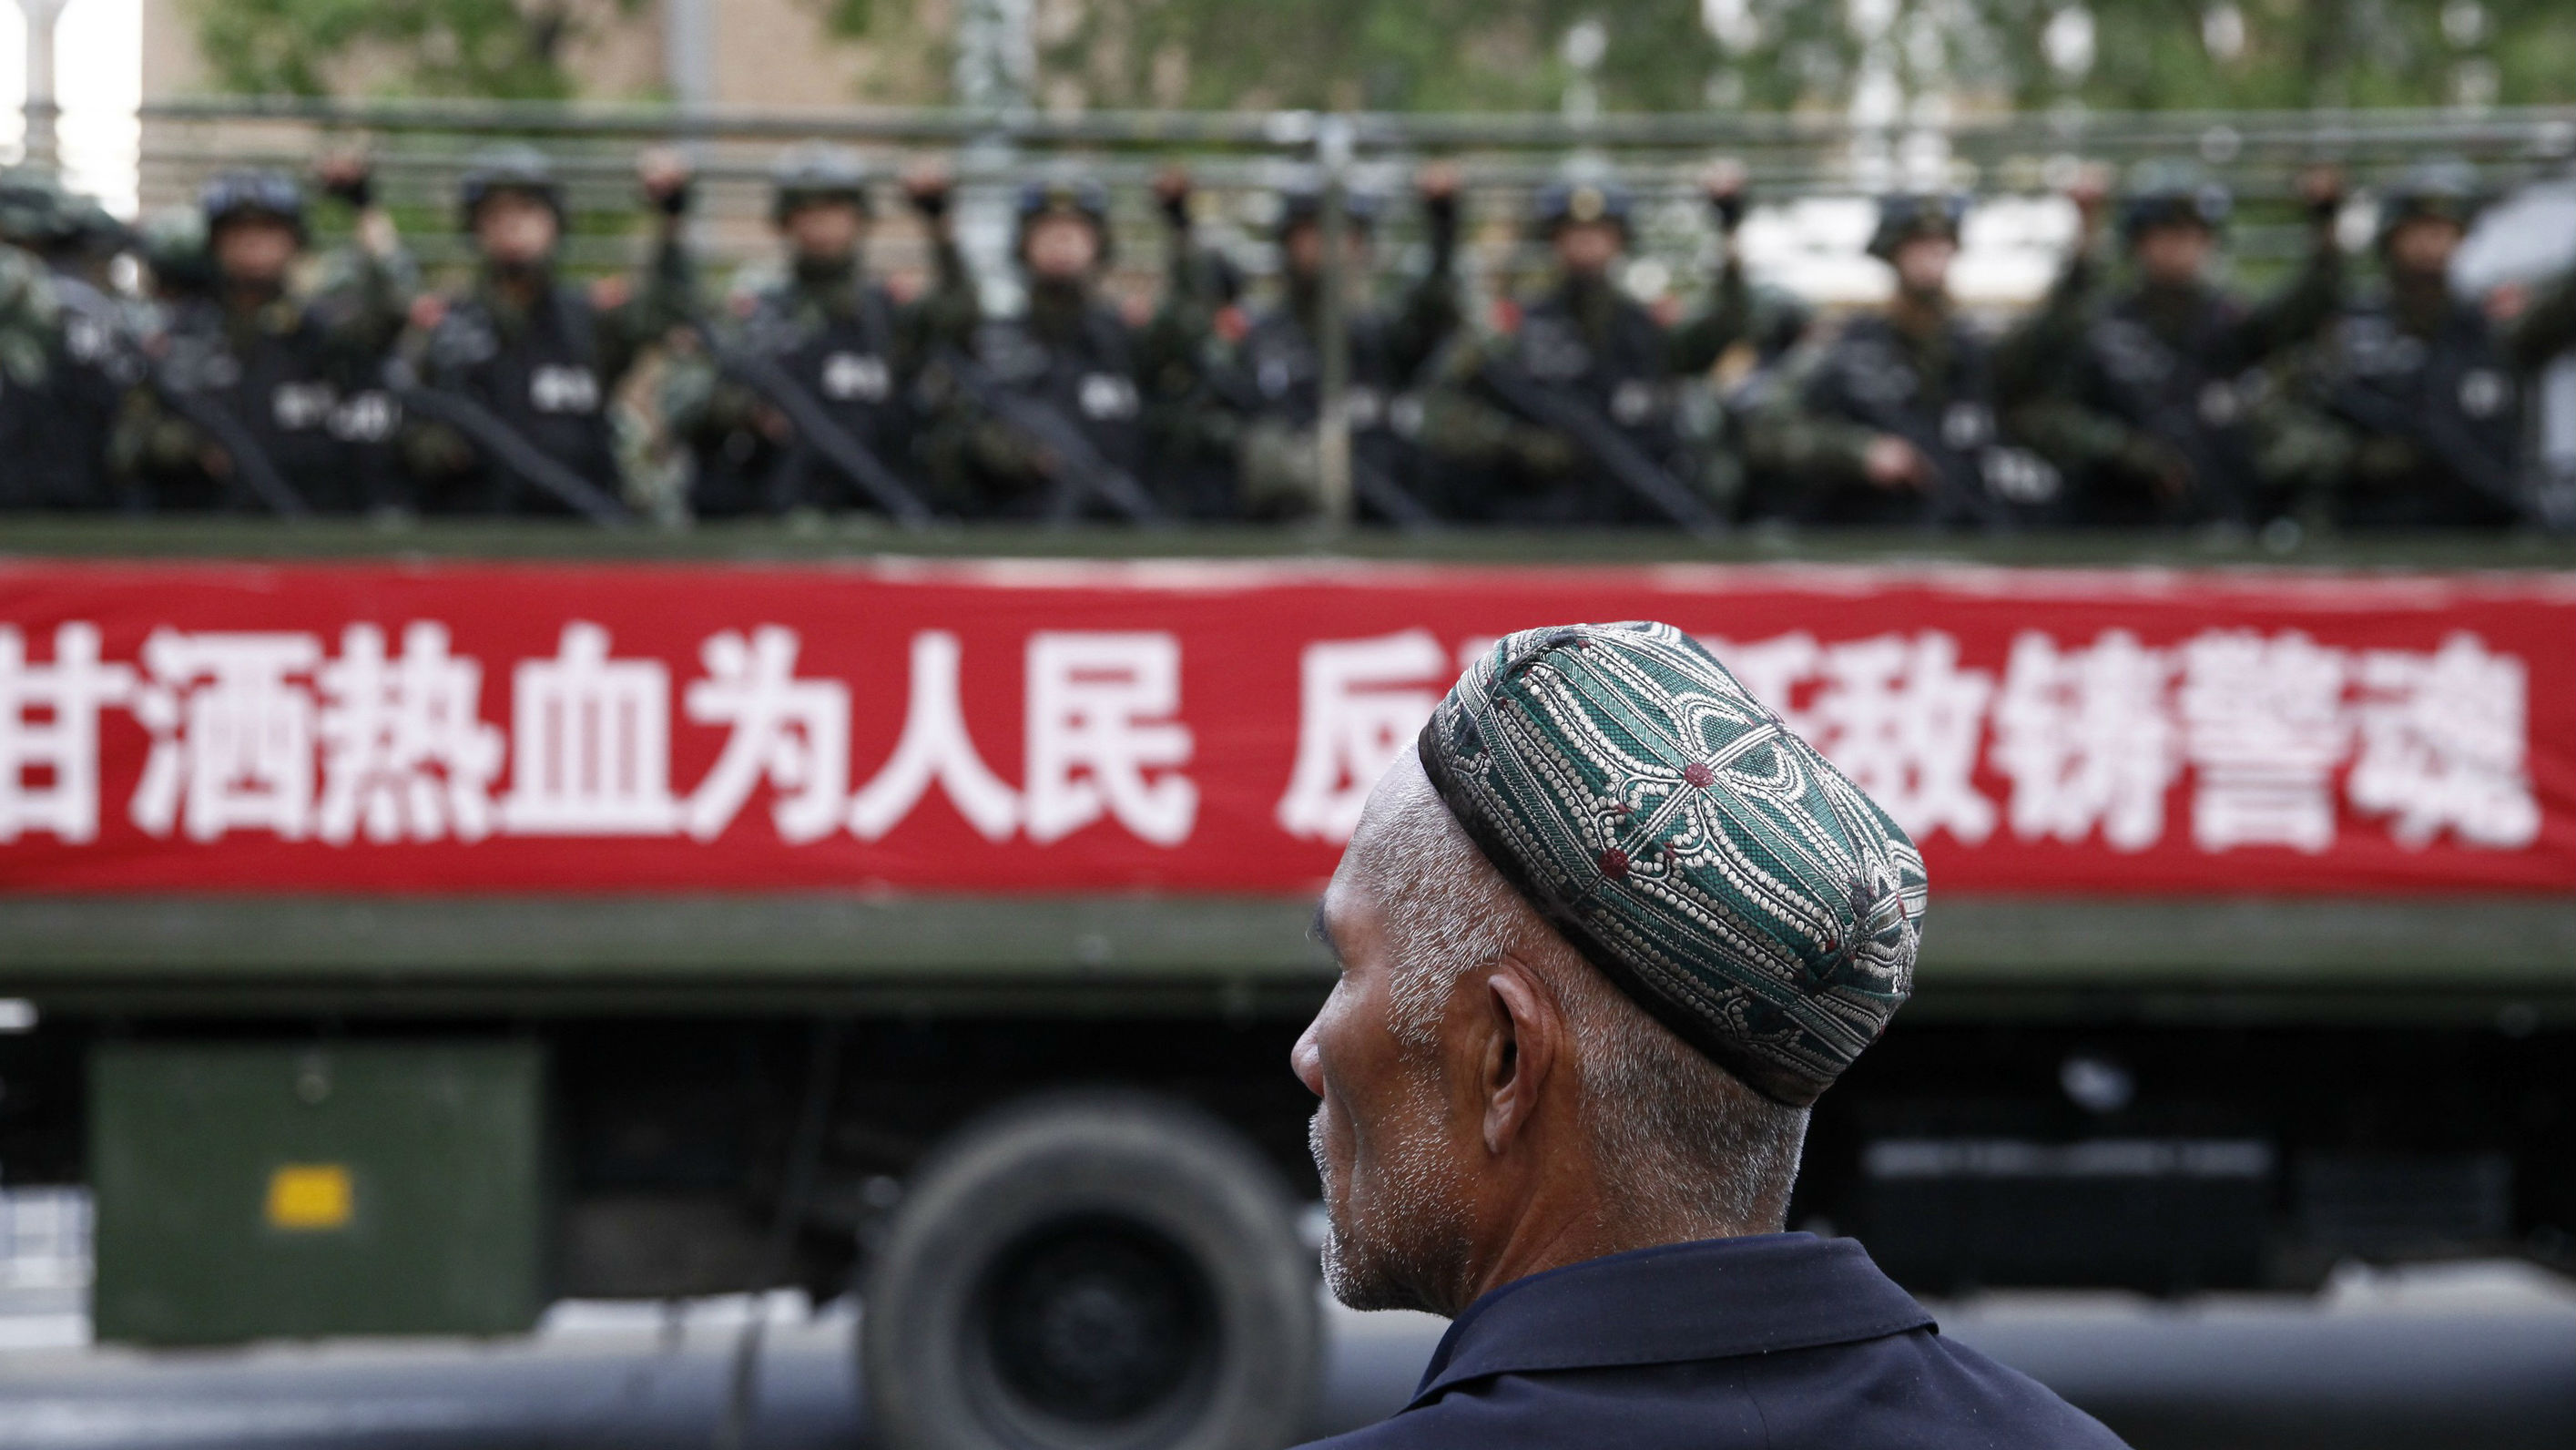 "A Uighur man looks on as a truck carrying paramilitary policemen travel along a street during an anti-terrorism oath-taking rally in Urumqi, Xinjiang Uighur Autonomous Region May 23, 2014. China launched a one-year campaign against terrorist violence in Xinjiang Uighur Autonomous Region on Friday, after 39 people were killed and 94 injured in a terrorist attack on Thursday, Xinhua News Agency reported. The Chinese characters on the banner read, ""Willingness to spill blood for the people. Countering terrorism and fighting the enemies is part of the police spirit."""